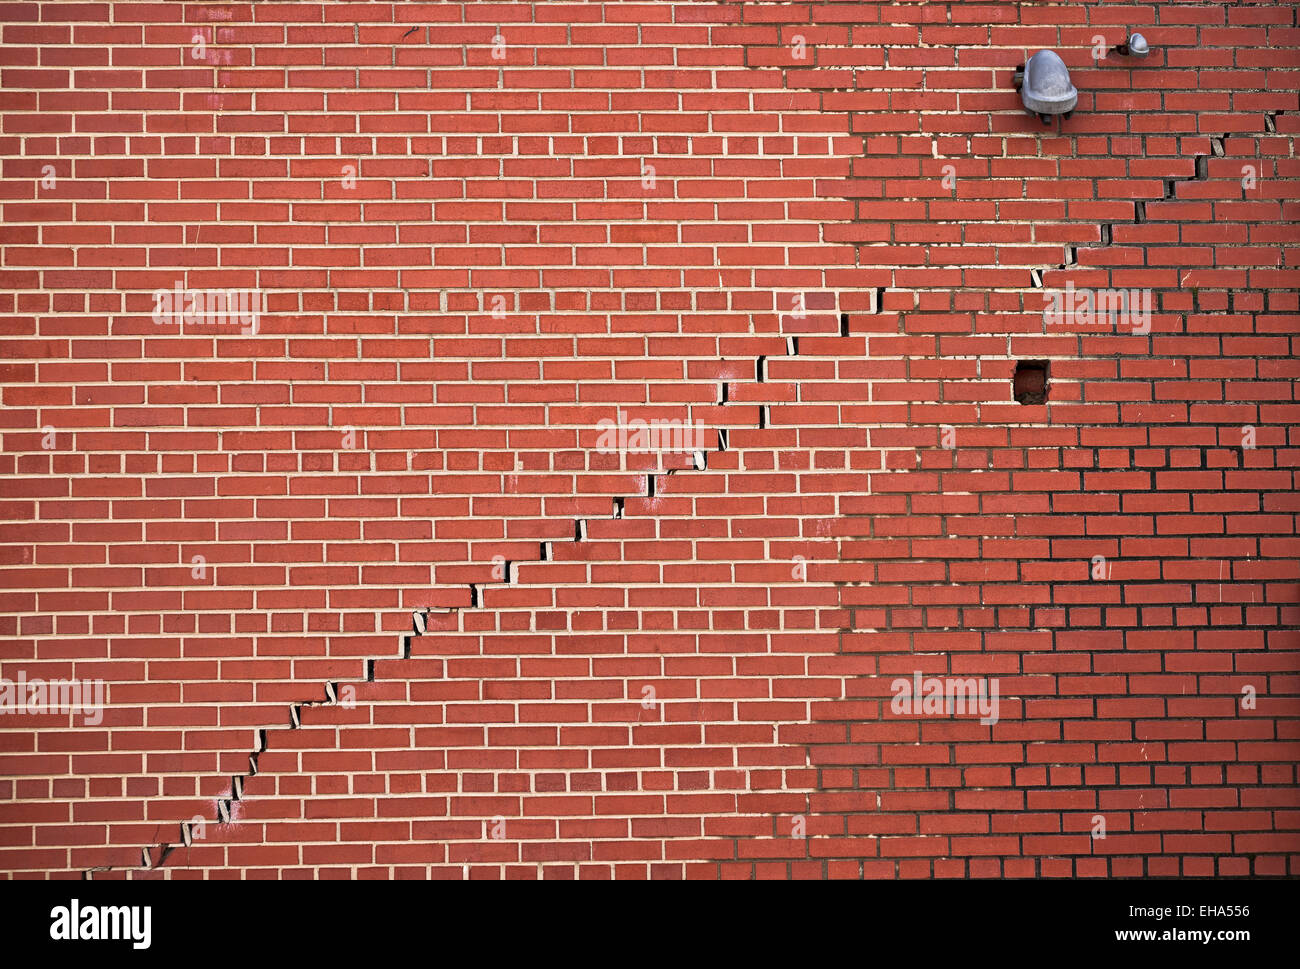 crack in brick wall where building is seperating - Stock Image